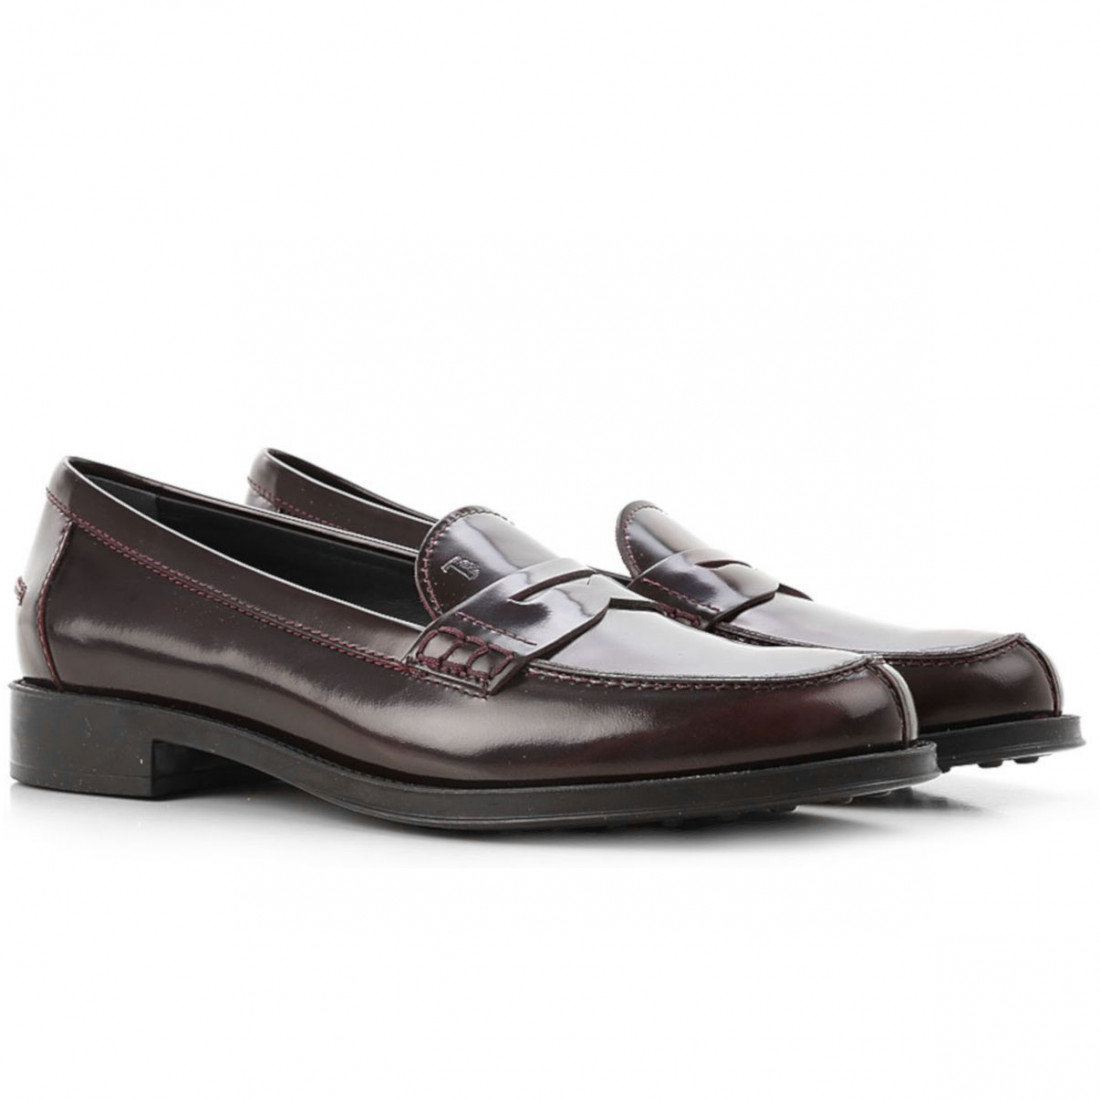 loafers woman tods xxw0ru0h500shal822 5163